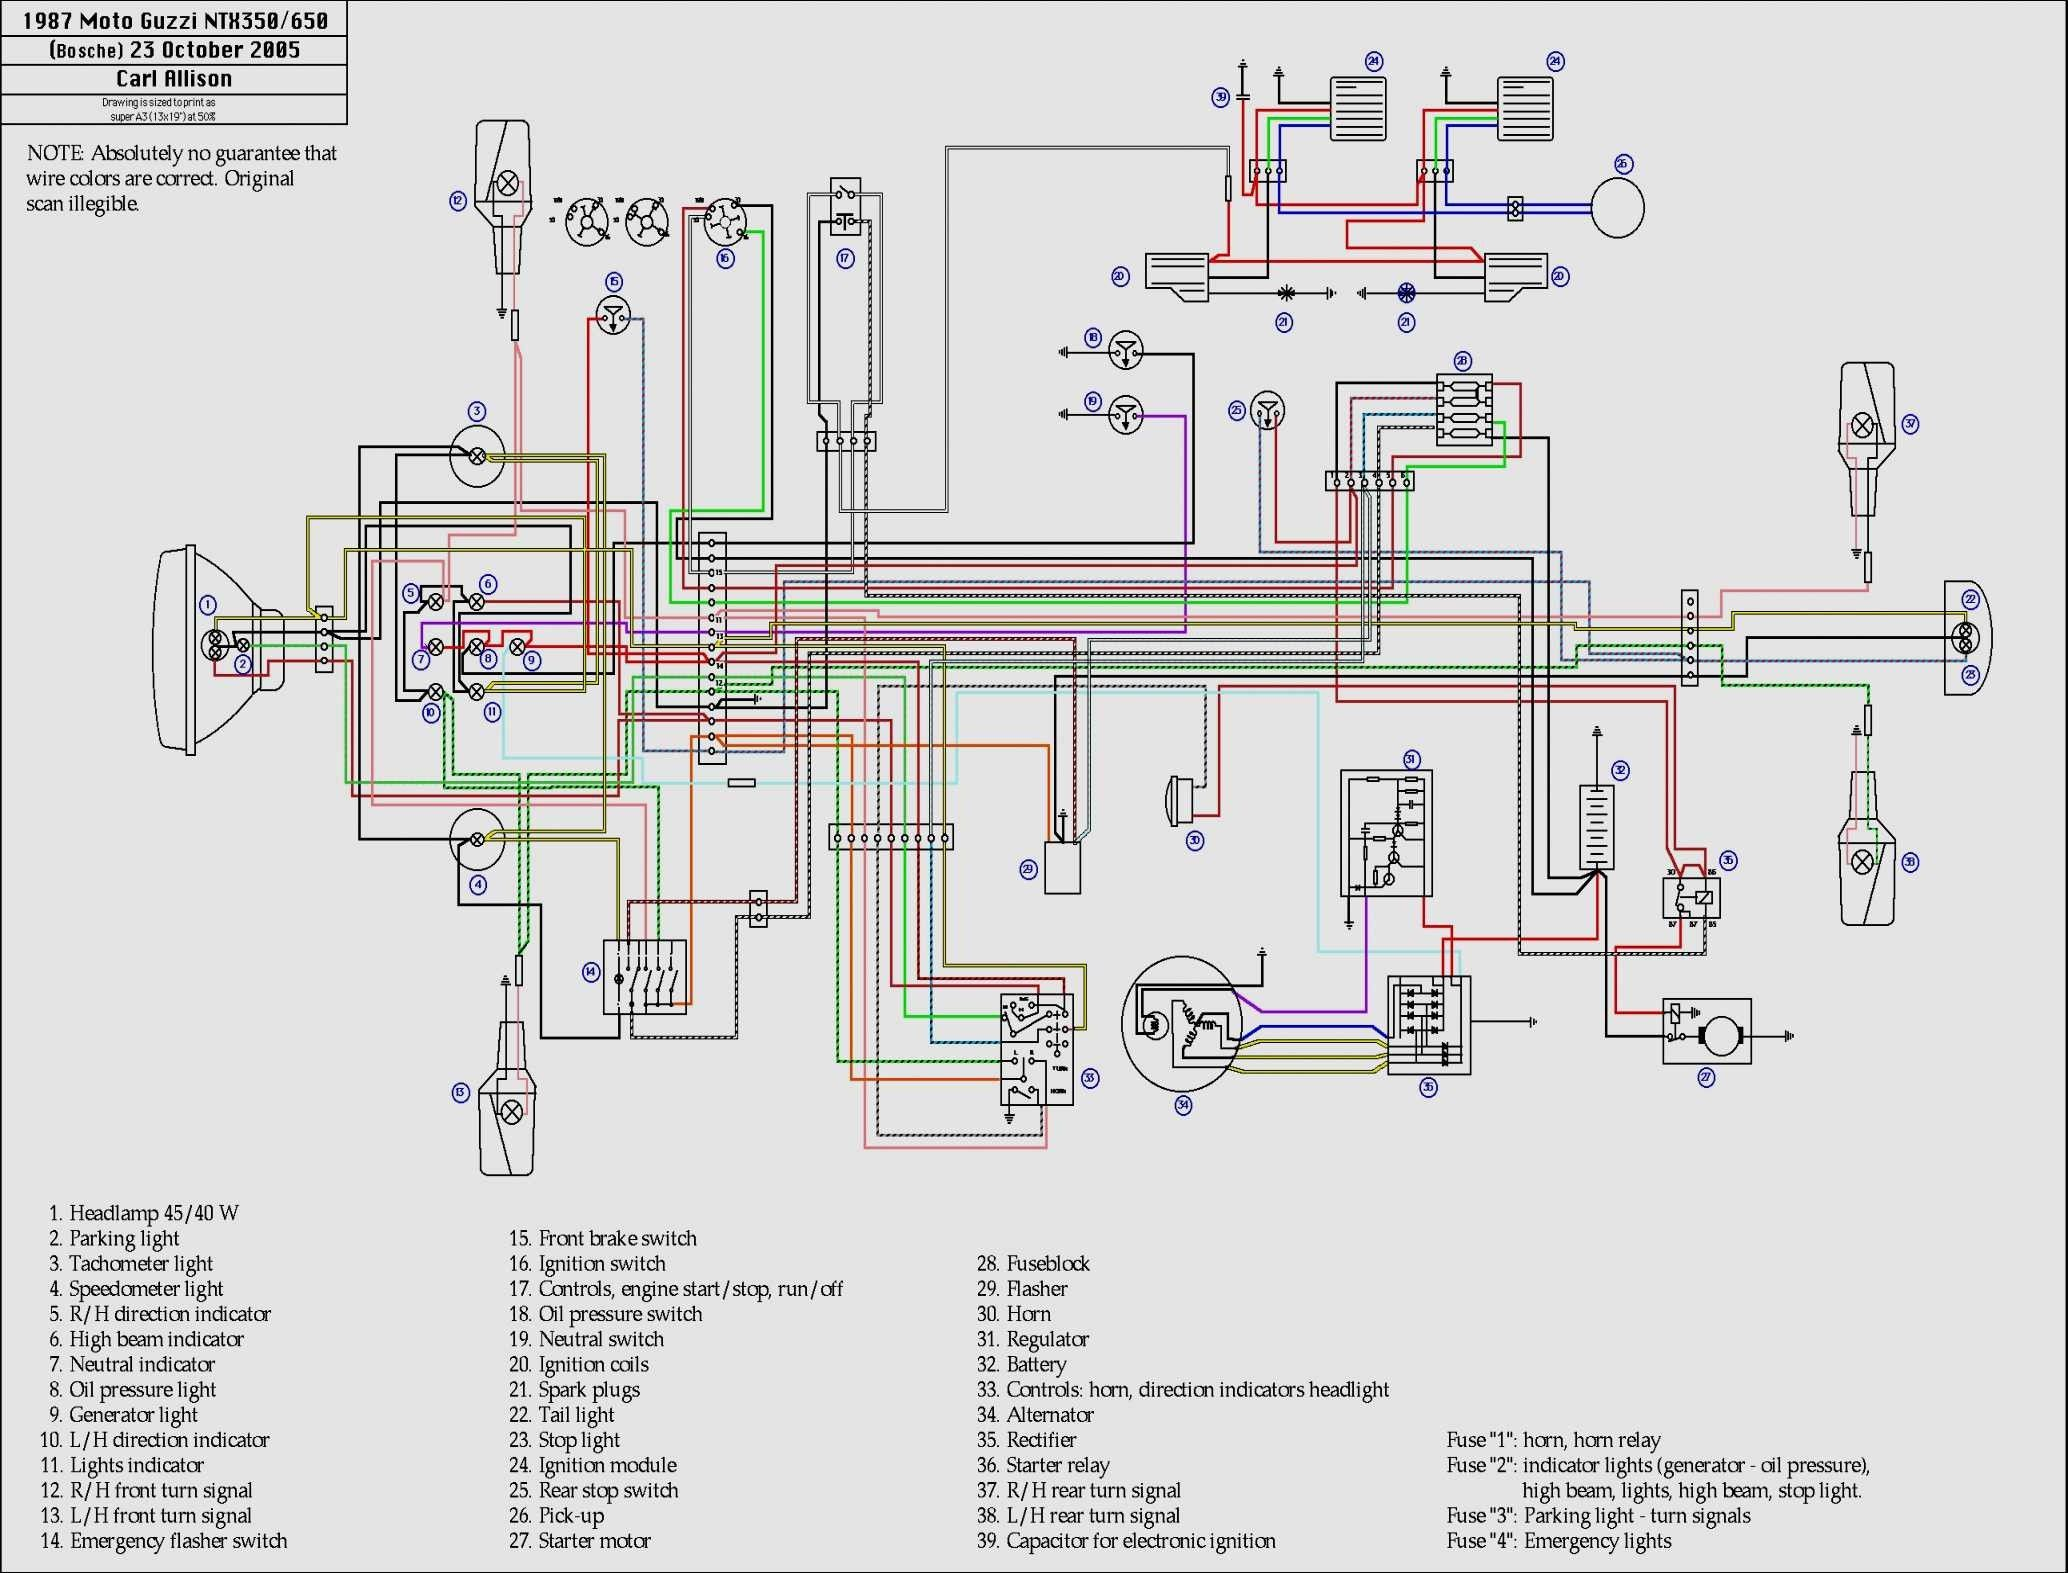 New Motor Wiring Diagram Explained Motorcycle Wiring Electrical Wiring Diagram Electrical Diagram